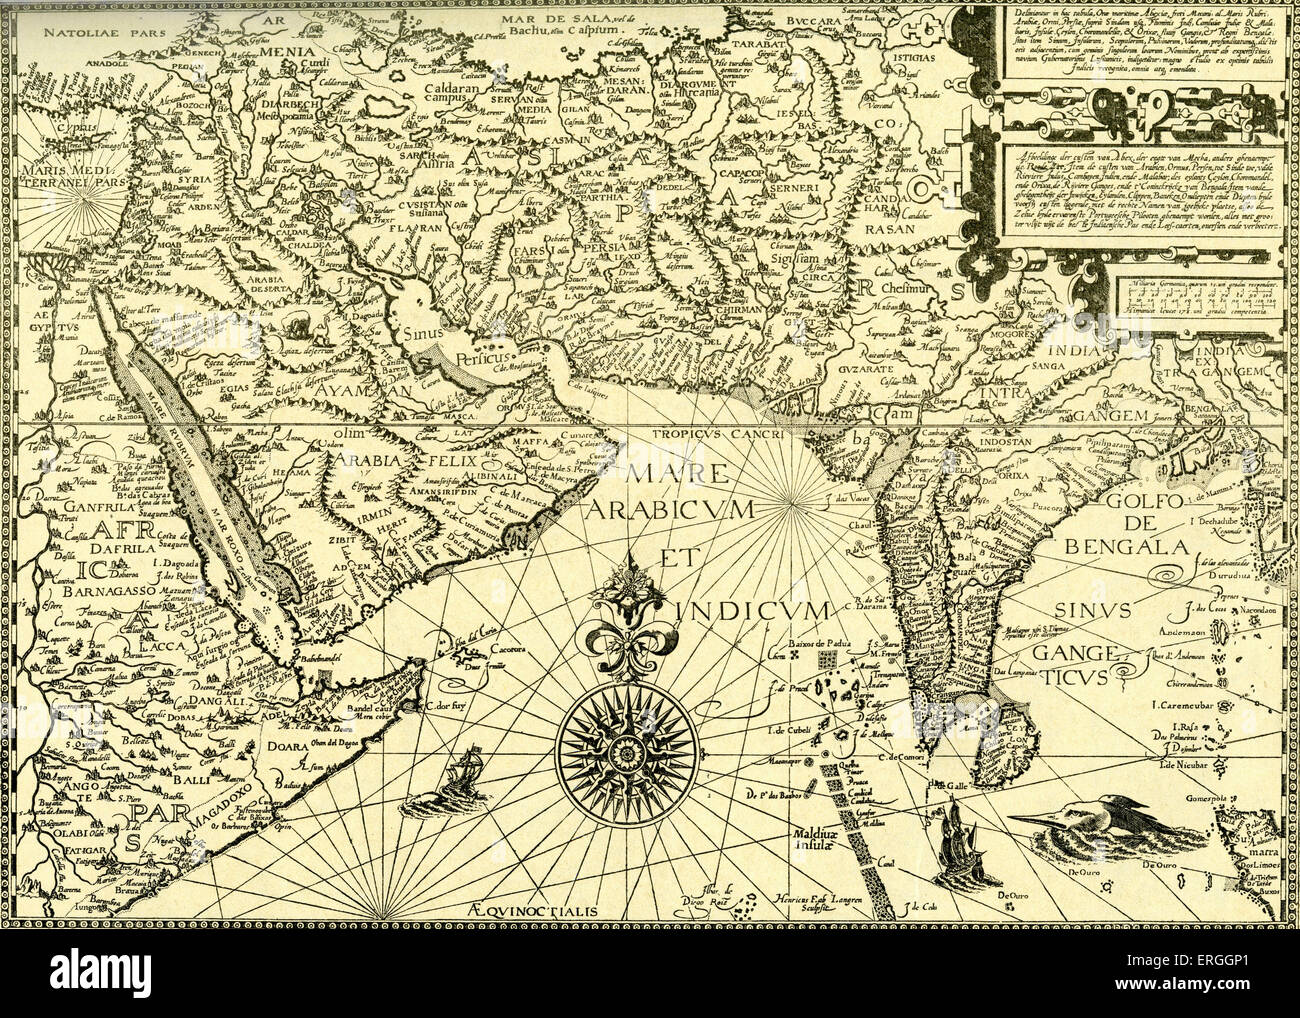 'North East Africa, Arabia, Persia and India'- map in Linschoten's  'Navigatio ac Itinerarium, etc.', 1599. Jan Huyghen van